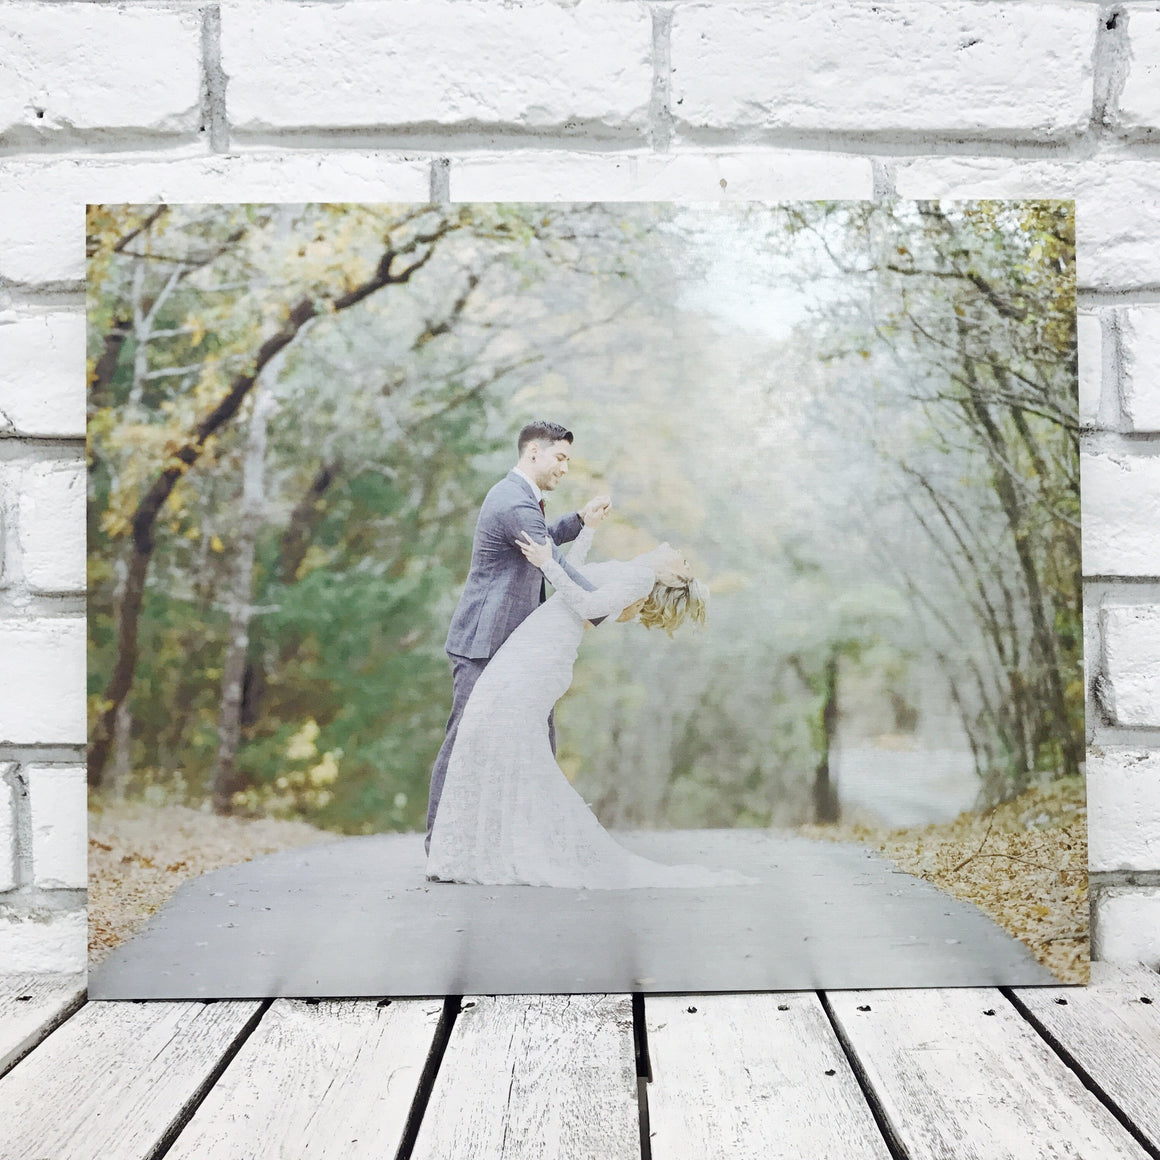 Wedding Engagement Photography- Tin Wedding Gift for the couple